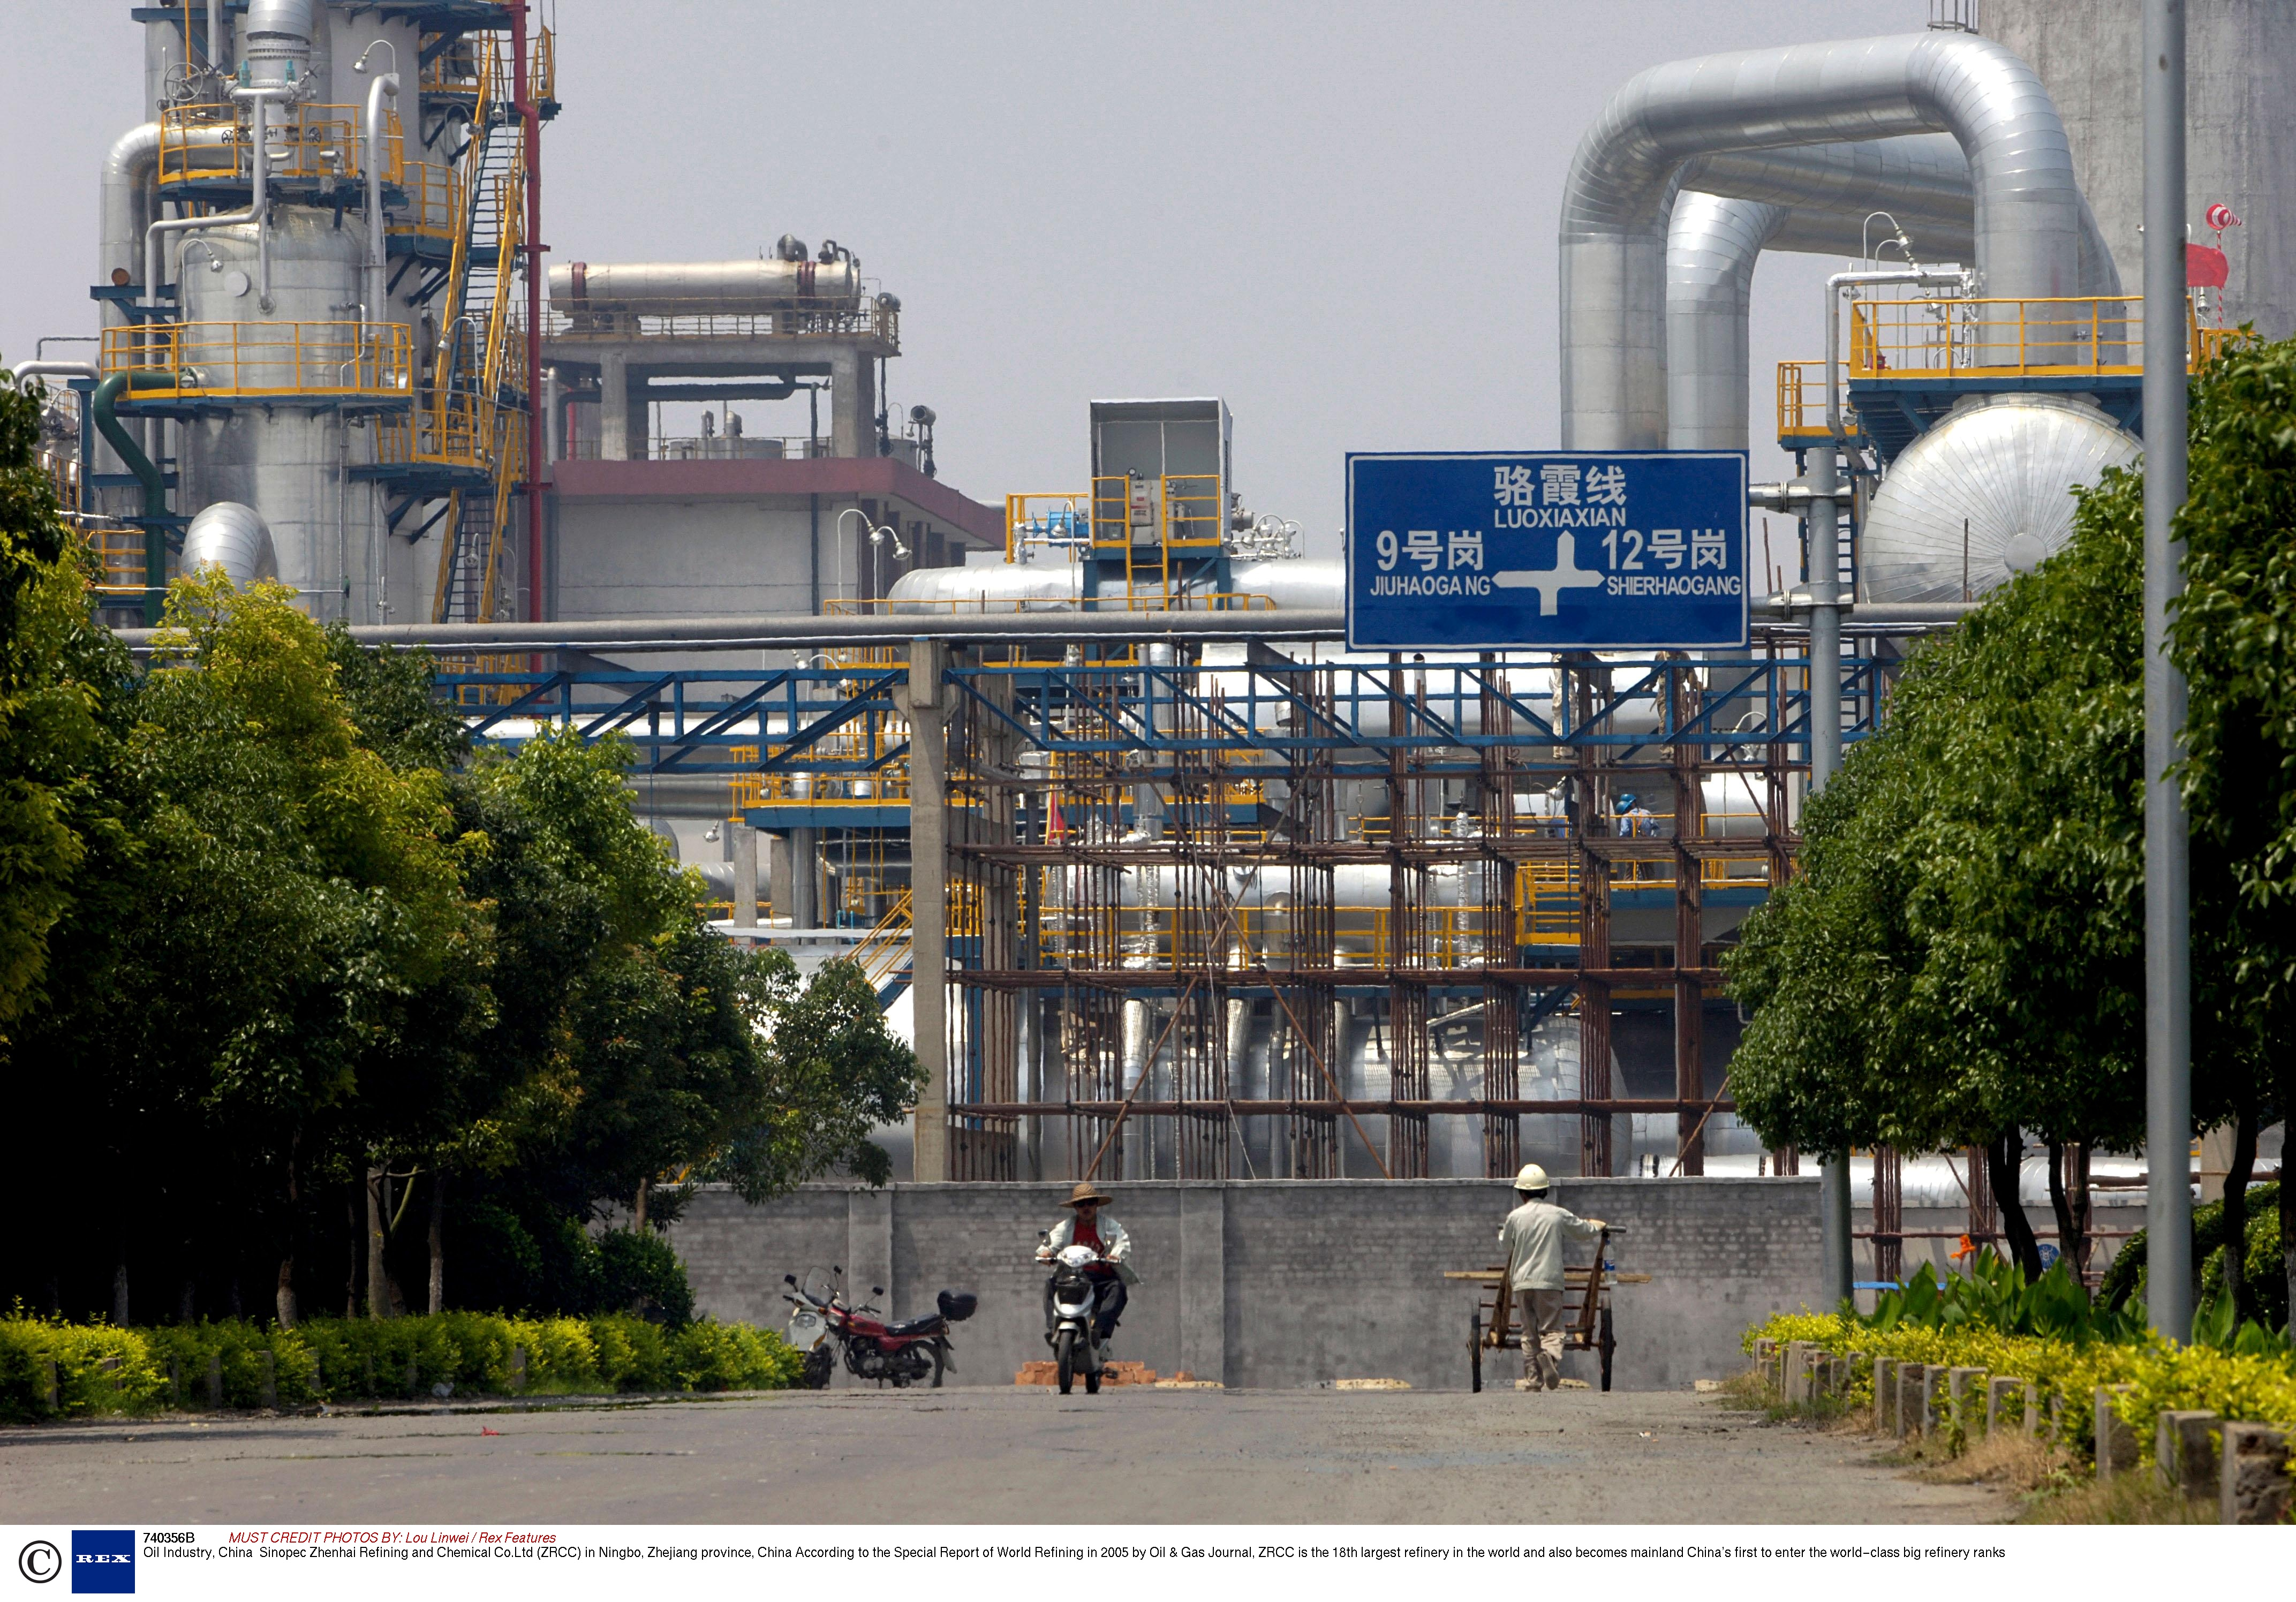 Sinopec Zhenhai Refining and Chemical Co.Ltd (ZRCC) in Ningbo, Zhejiang province, China. (Source: Lou Linwei/Rex Features)